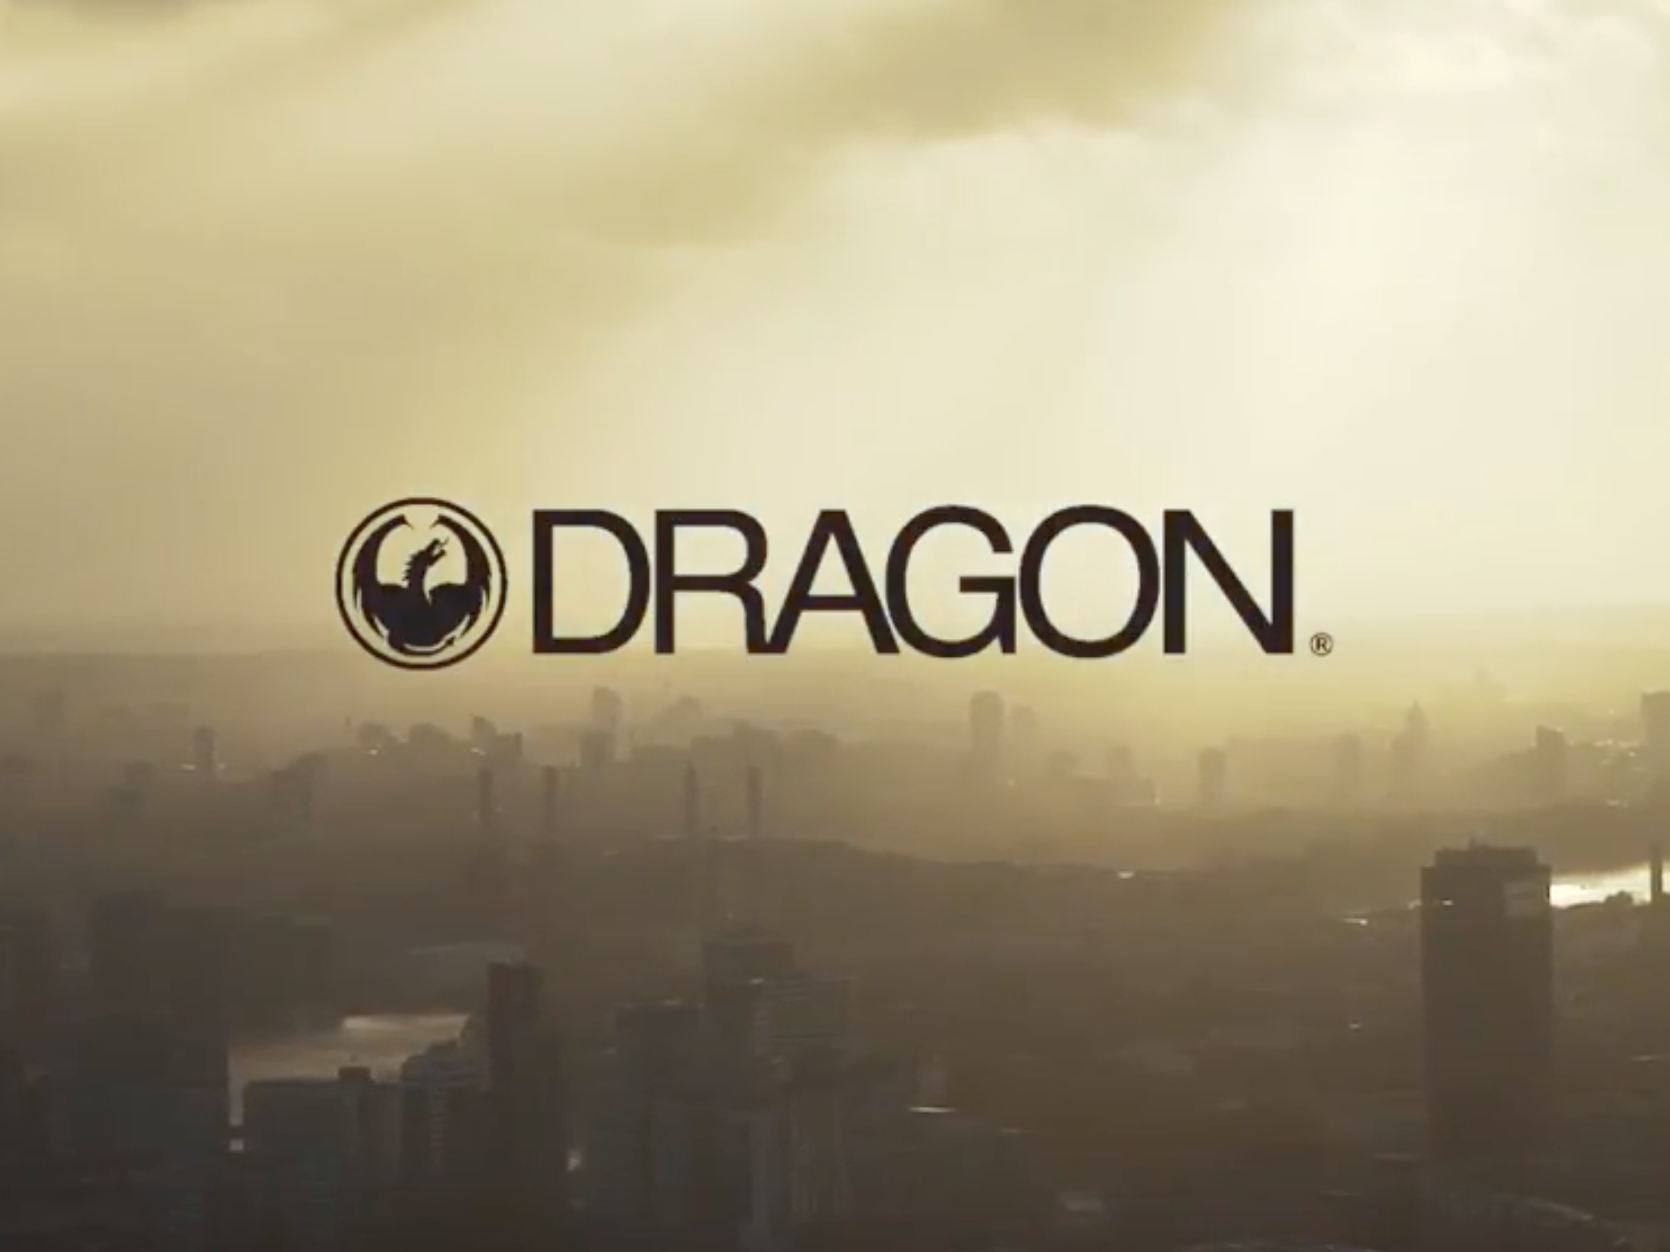 Dragon x Asymbol collaboration – official launch edit